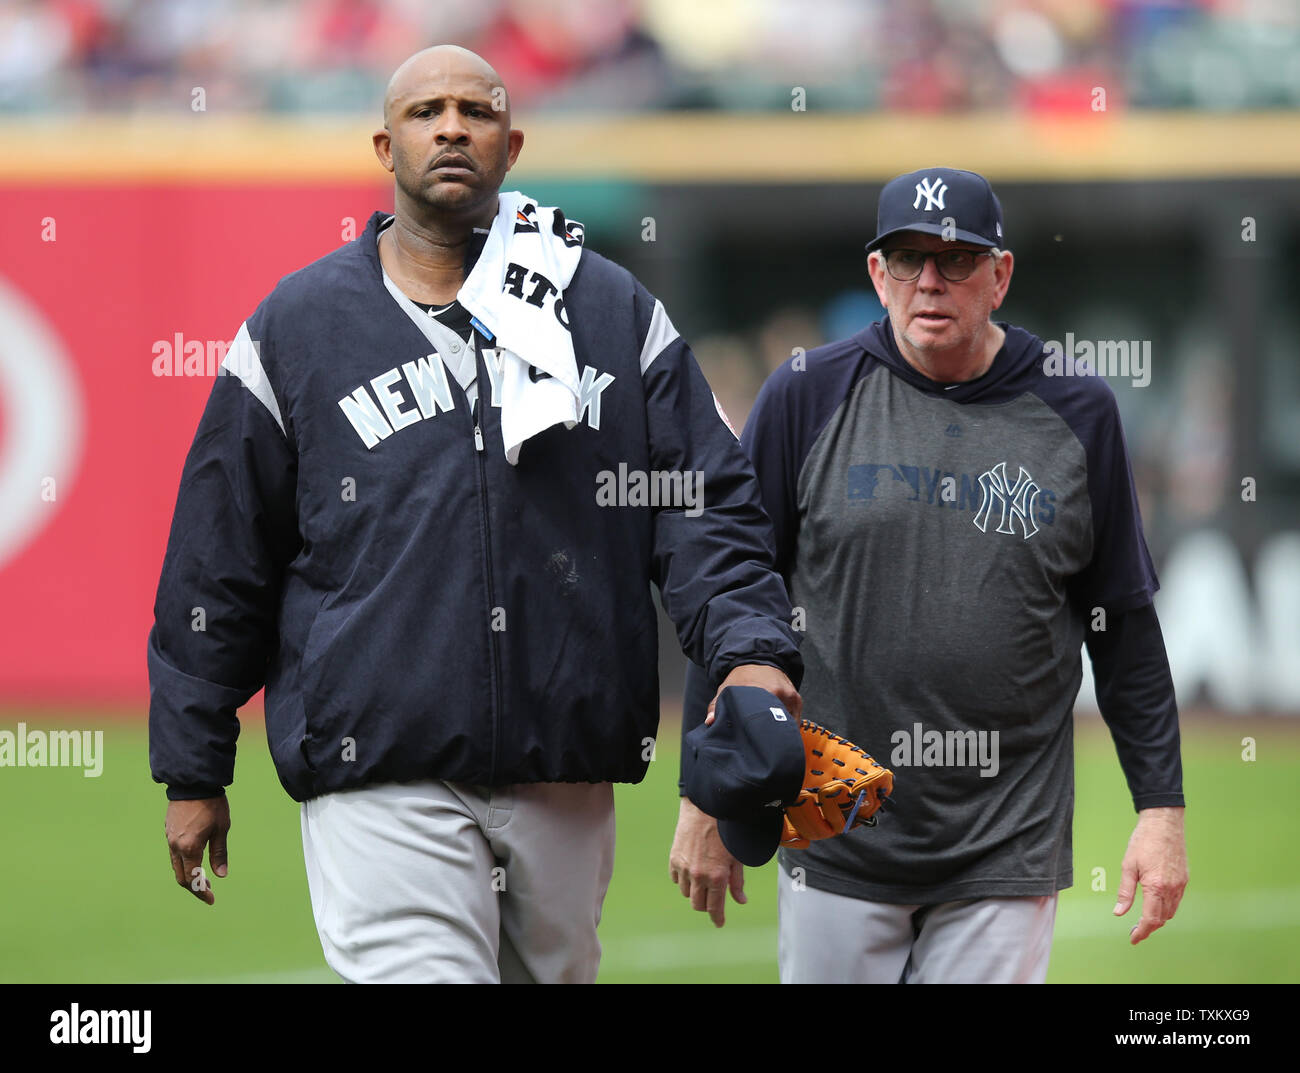 New York Yankees C C Sabathia walks to the dugout alongside pitching coach Larry Rothschild prior to his start against the Cleveland Indians in Cleveland OH June 8, 2019. Photo by Aaron Josefczyk/UPI - Stock Image